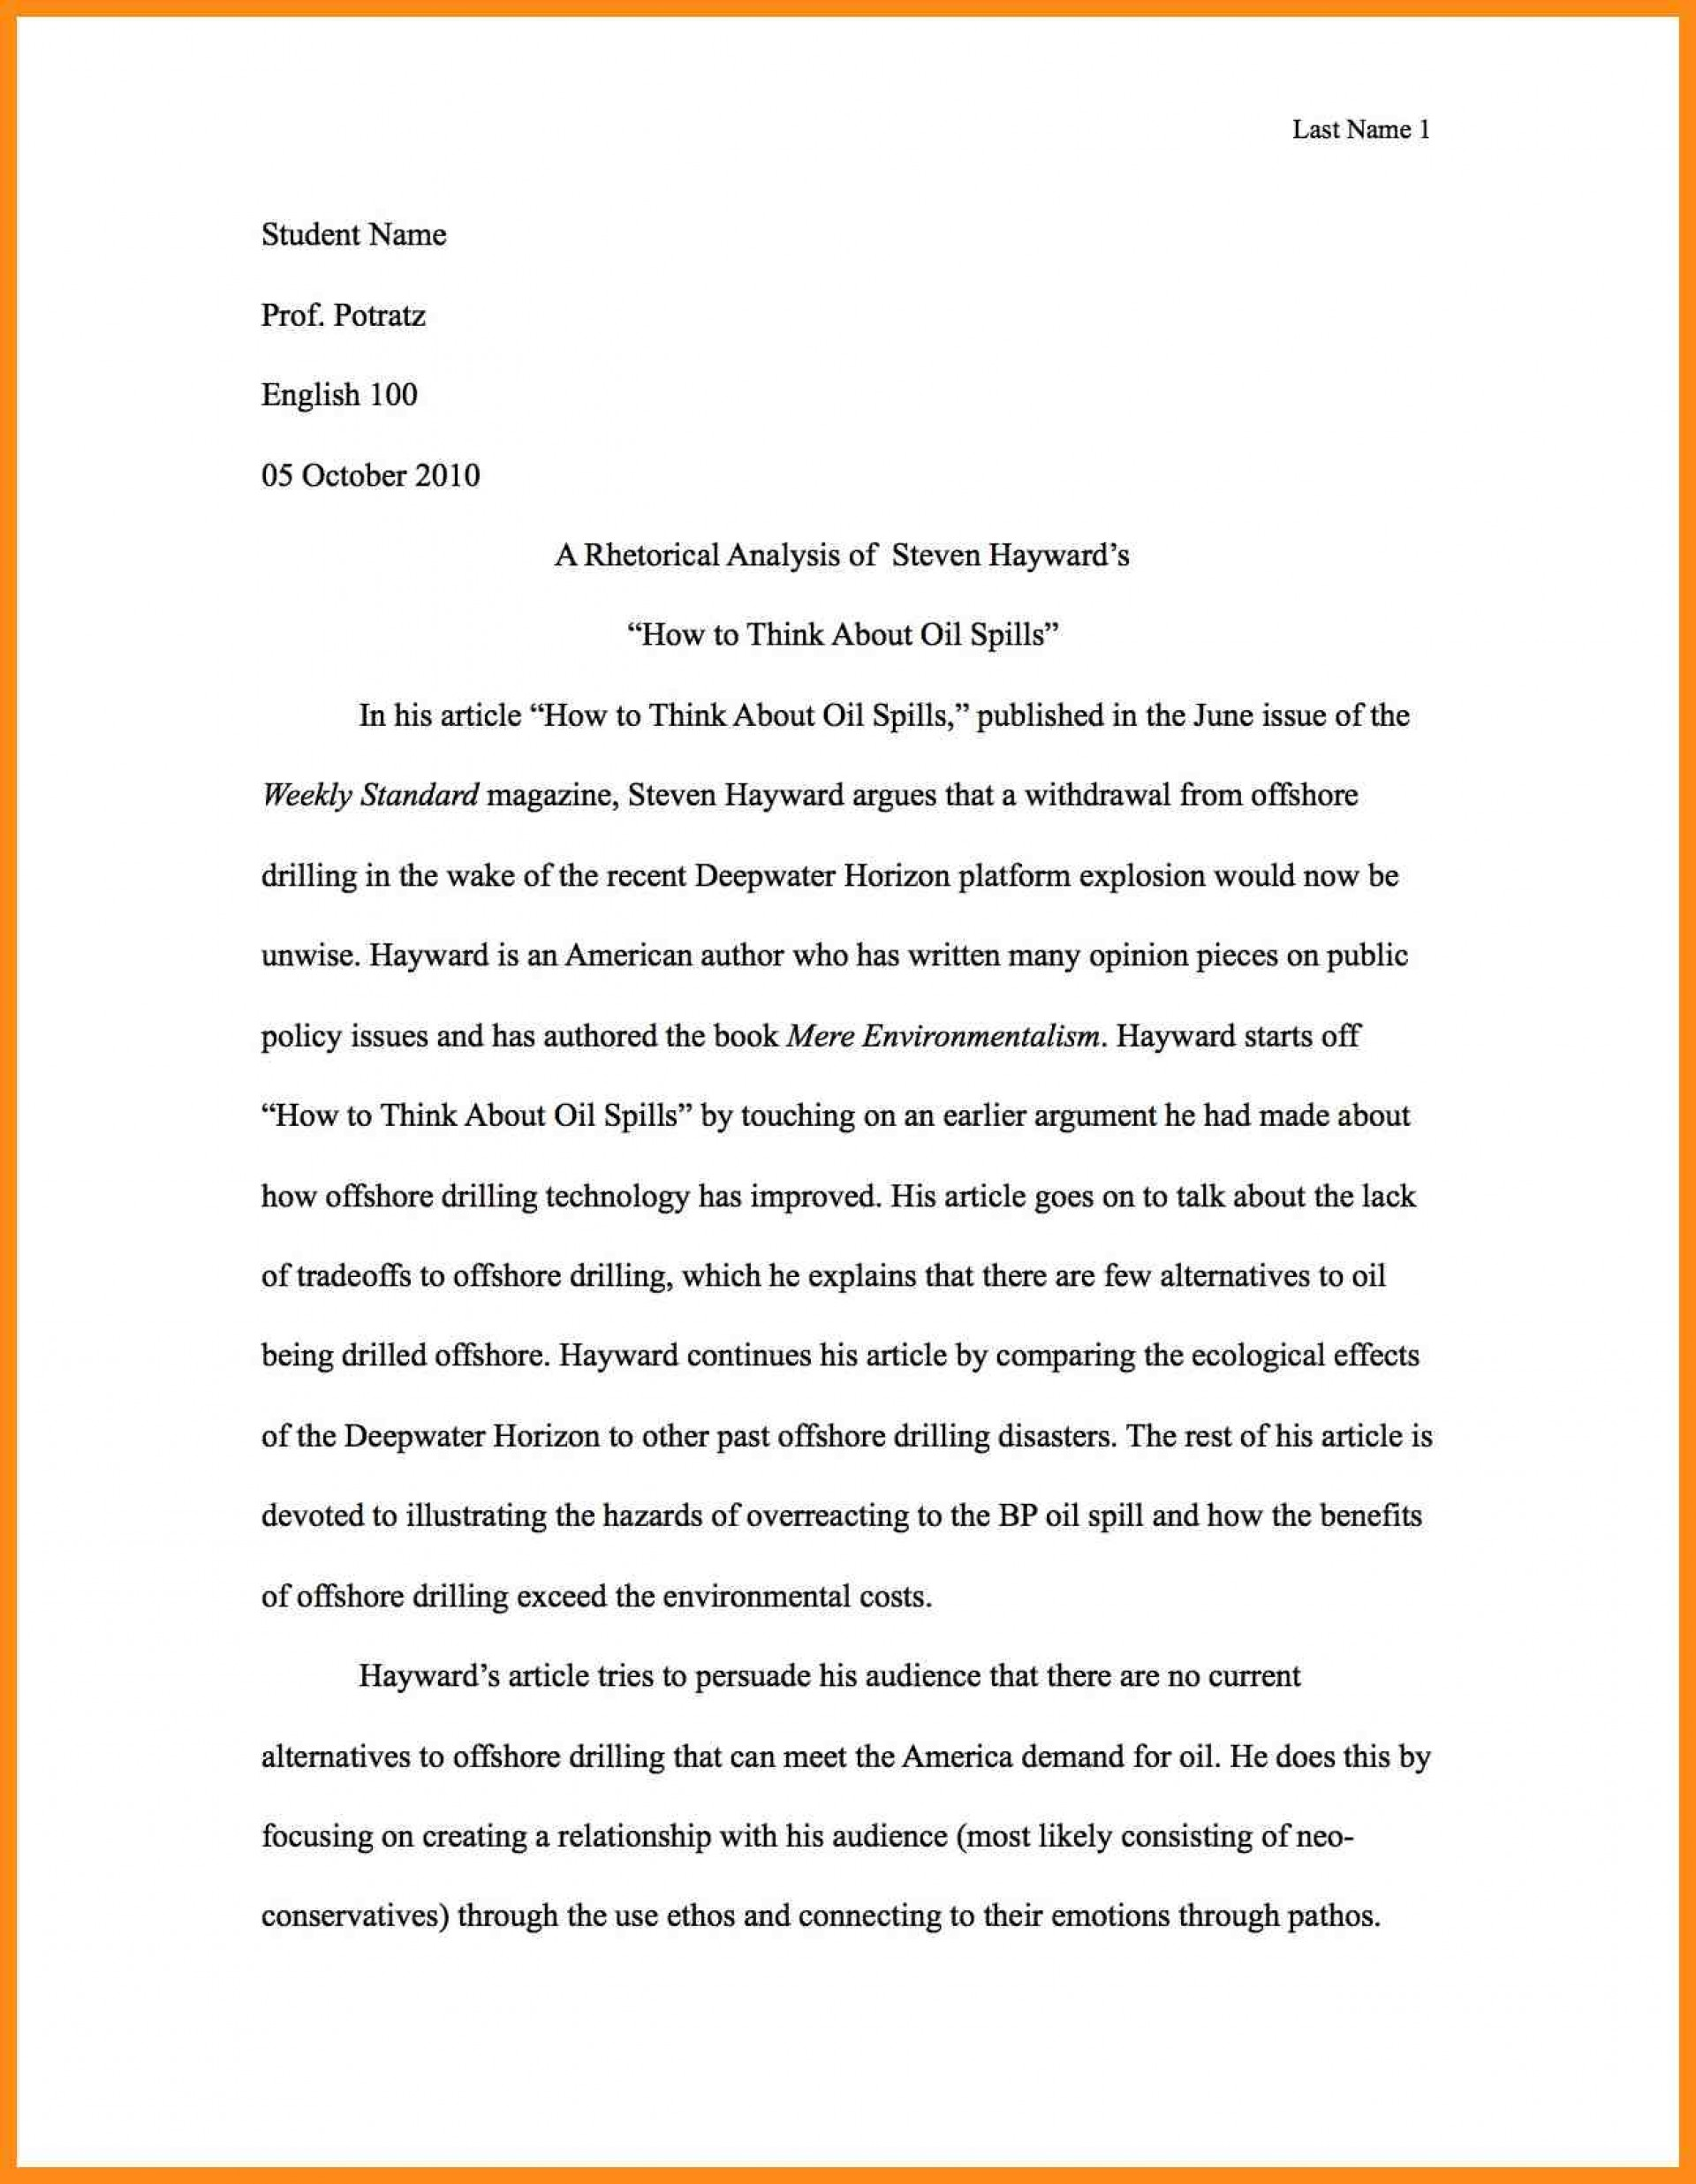 002 Write Best Rhetoricalnalysis Essay Example Of Using Ethos Pathosnd Logos Pdf What Is Frightening A Rhetorical Devices The Purpose Analysis 1920